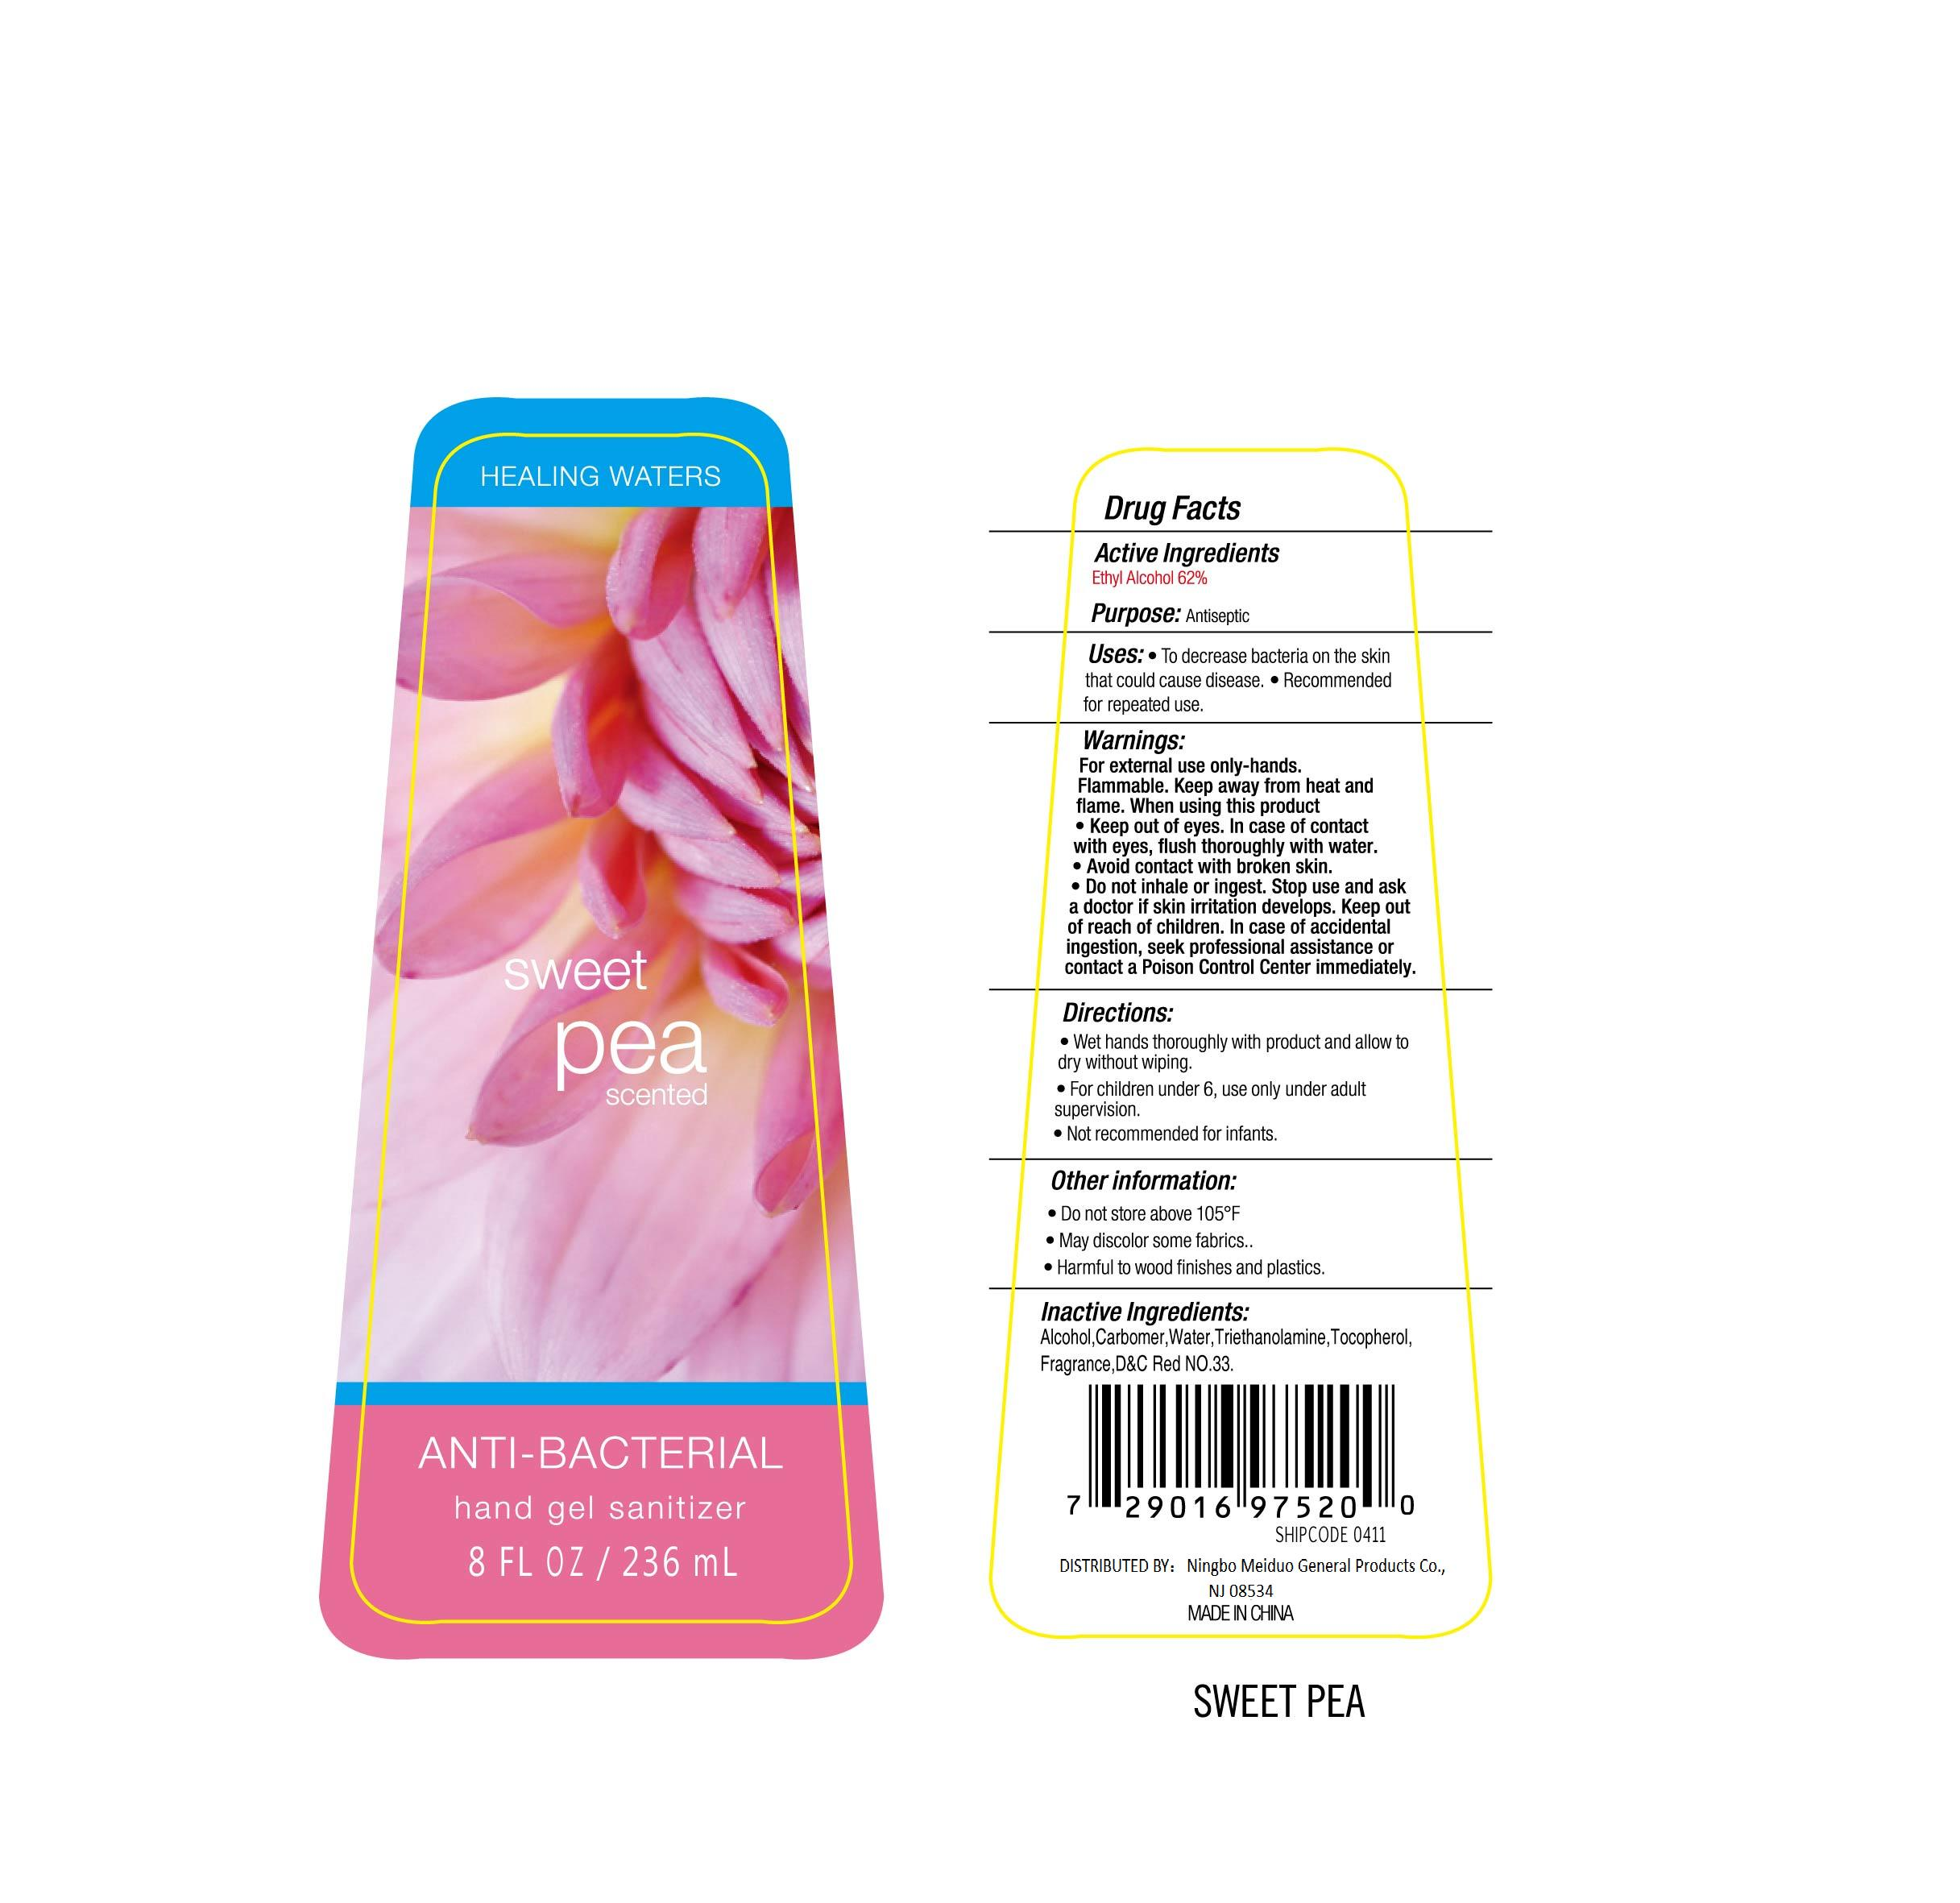 Healing Waters Sweet Pea Scented Anti-bacterial Hand Sanitizer (Alcohol) Gel [Ningbo Meiduo General Products Co., Ltd]